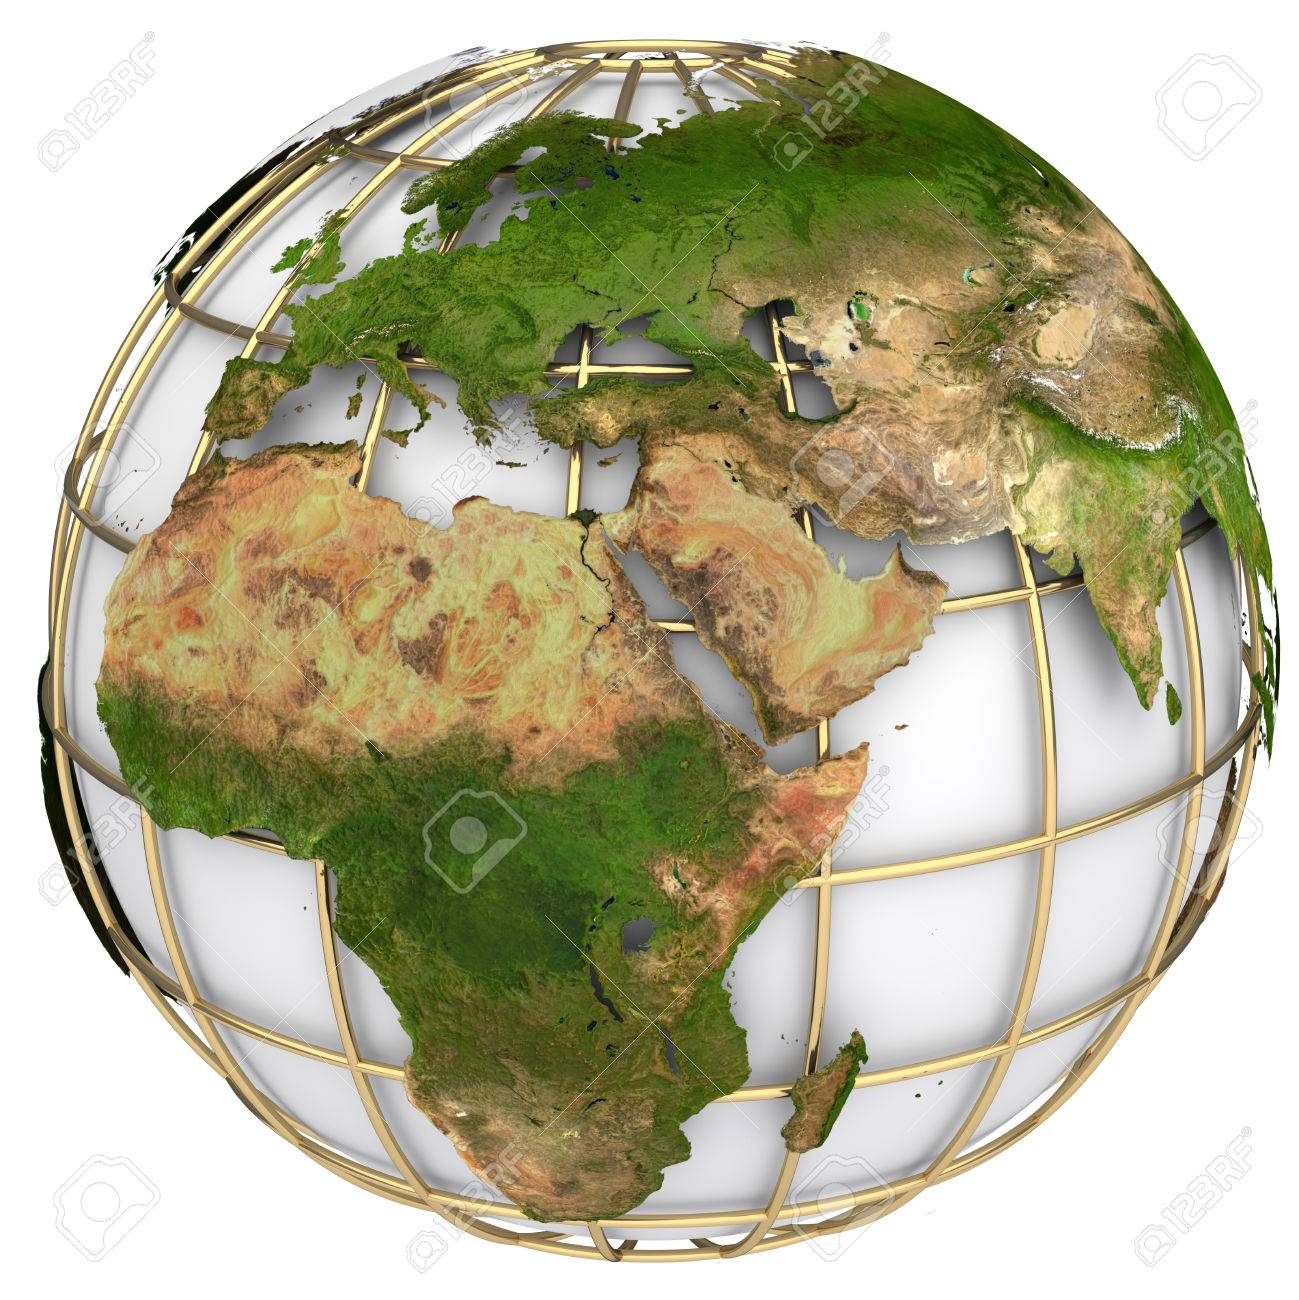 Earth world map africa and europe on a planet globe the earth earth world map africa and europe on a planet globe the earth texture of gumiabroncs Image collections